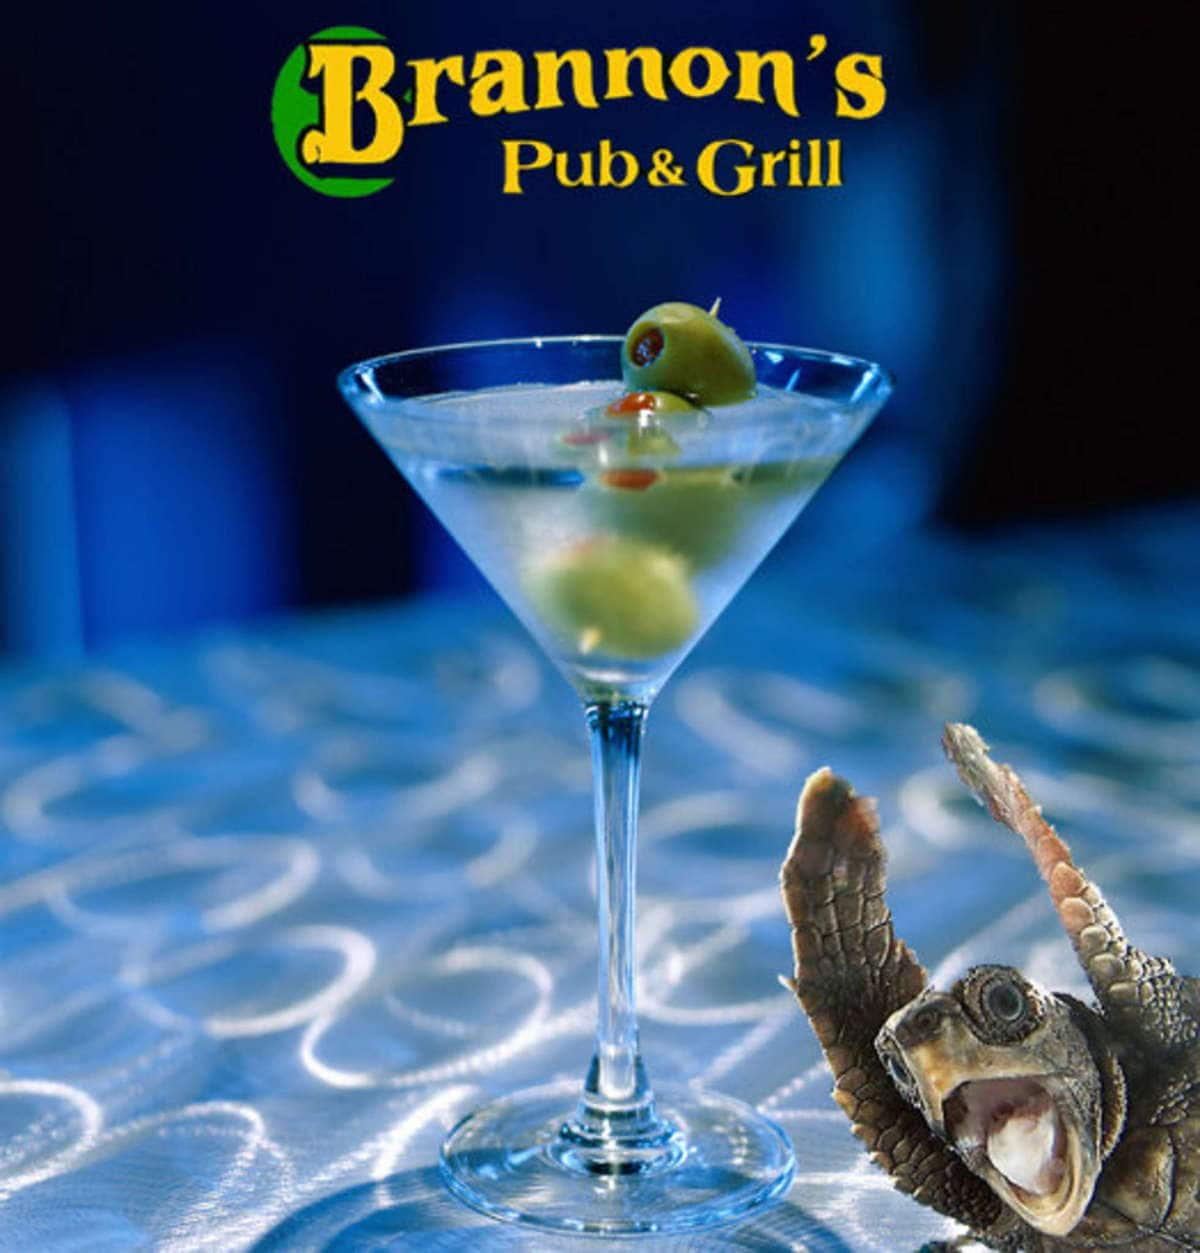 Brannon's Pub and Grill